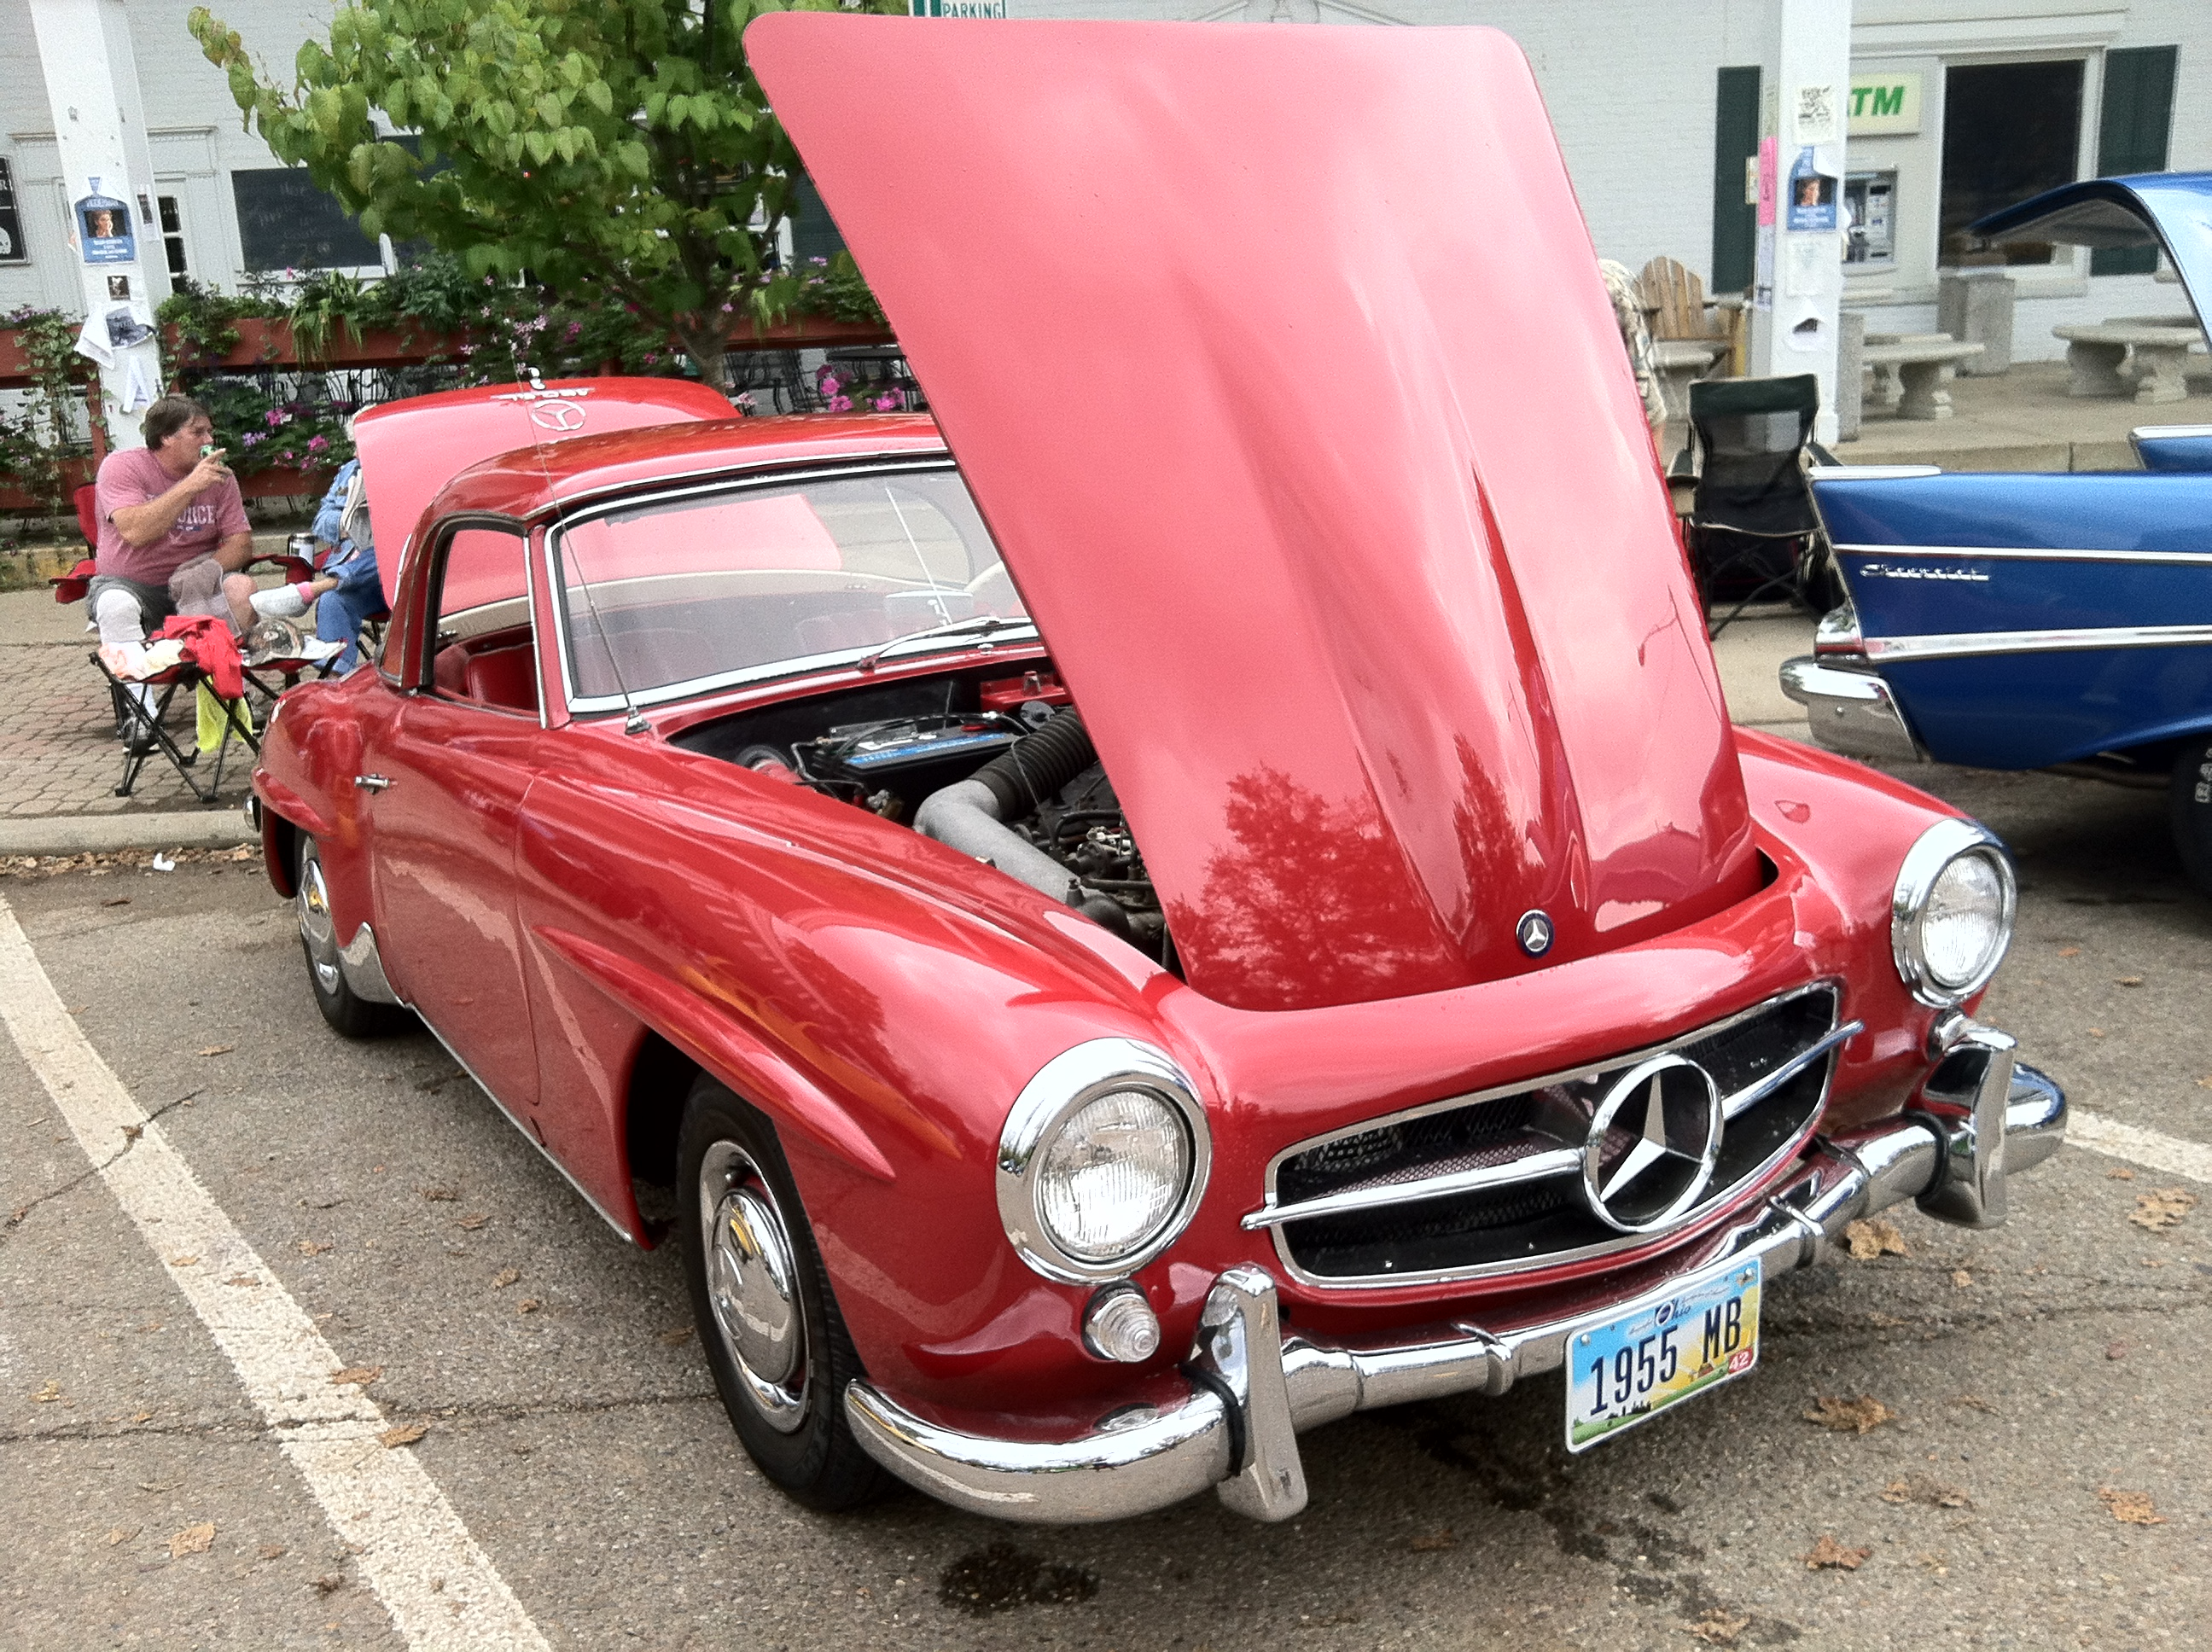 This is a car from the car show that happened this past weekend, not an actual vehicle driven by a Kenyon student.